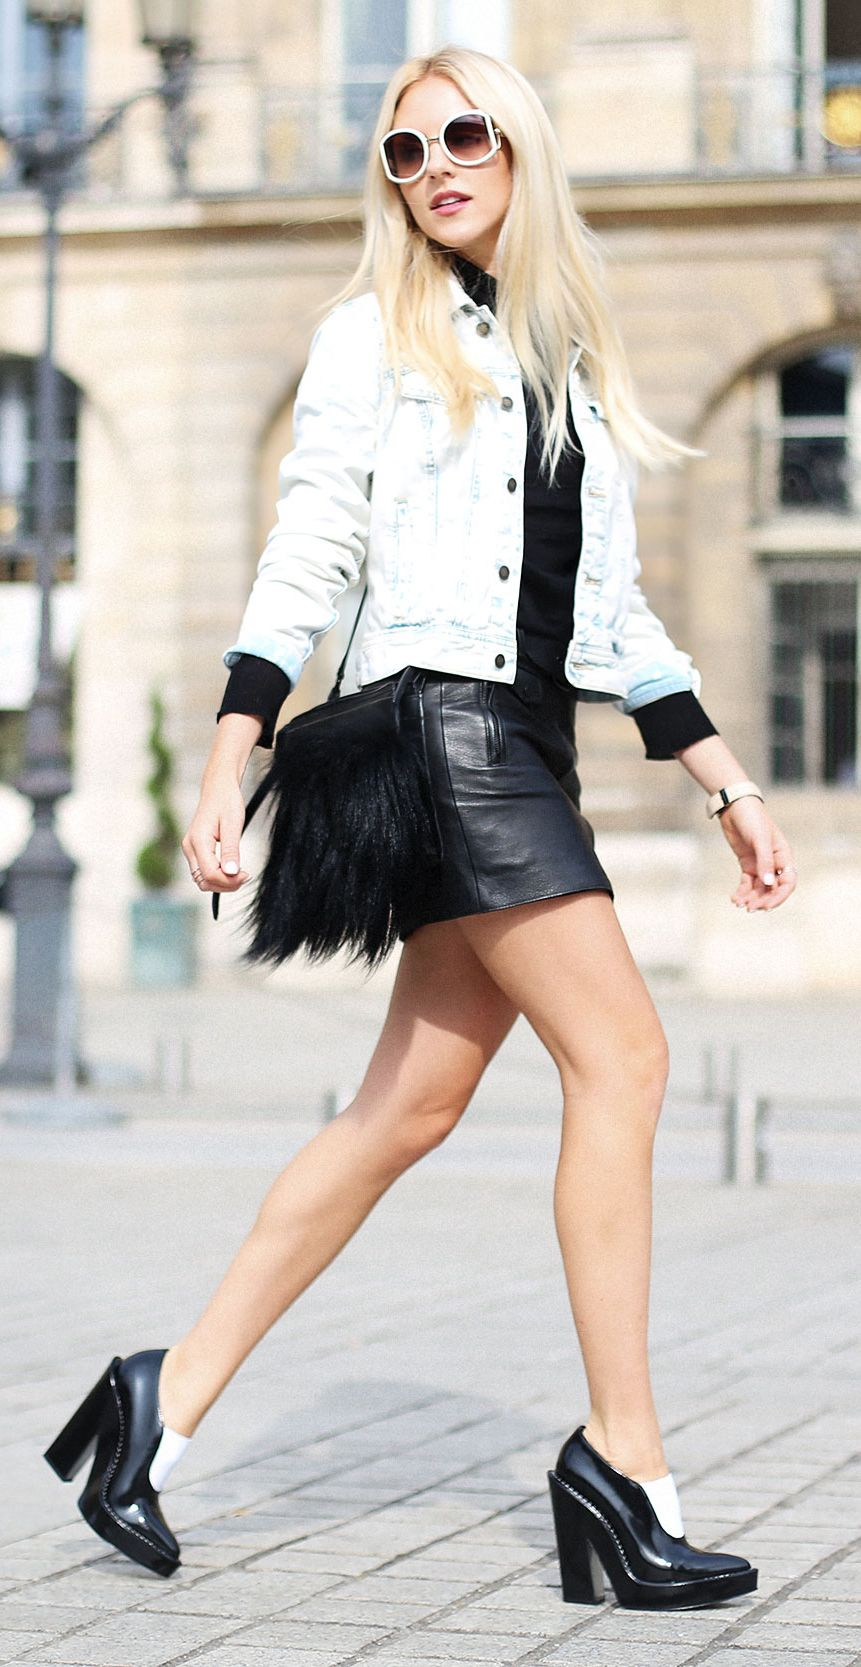 Shea Marie is wearing sunglasses from Ferragamo, mini leather skirt from A.L.C, shoes from Alexander Wang and a denim jacket from Free Peopl...